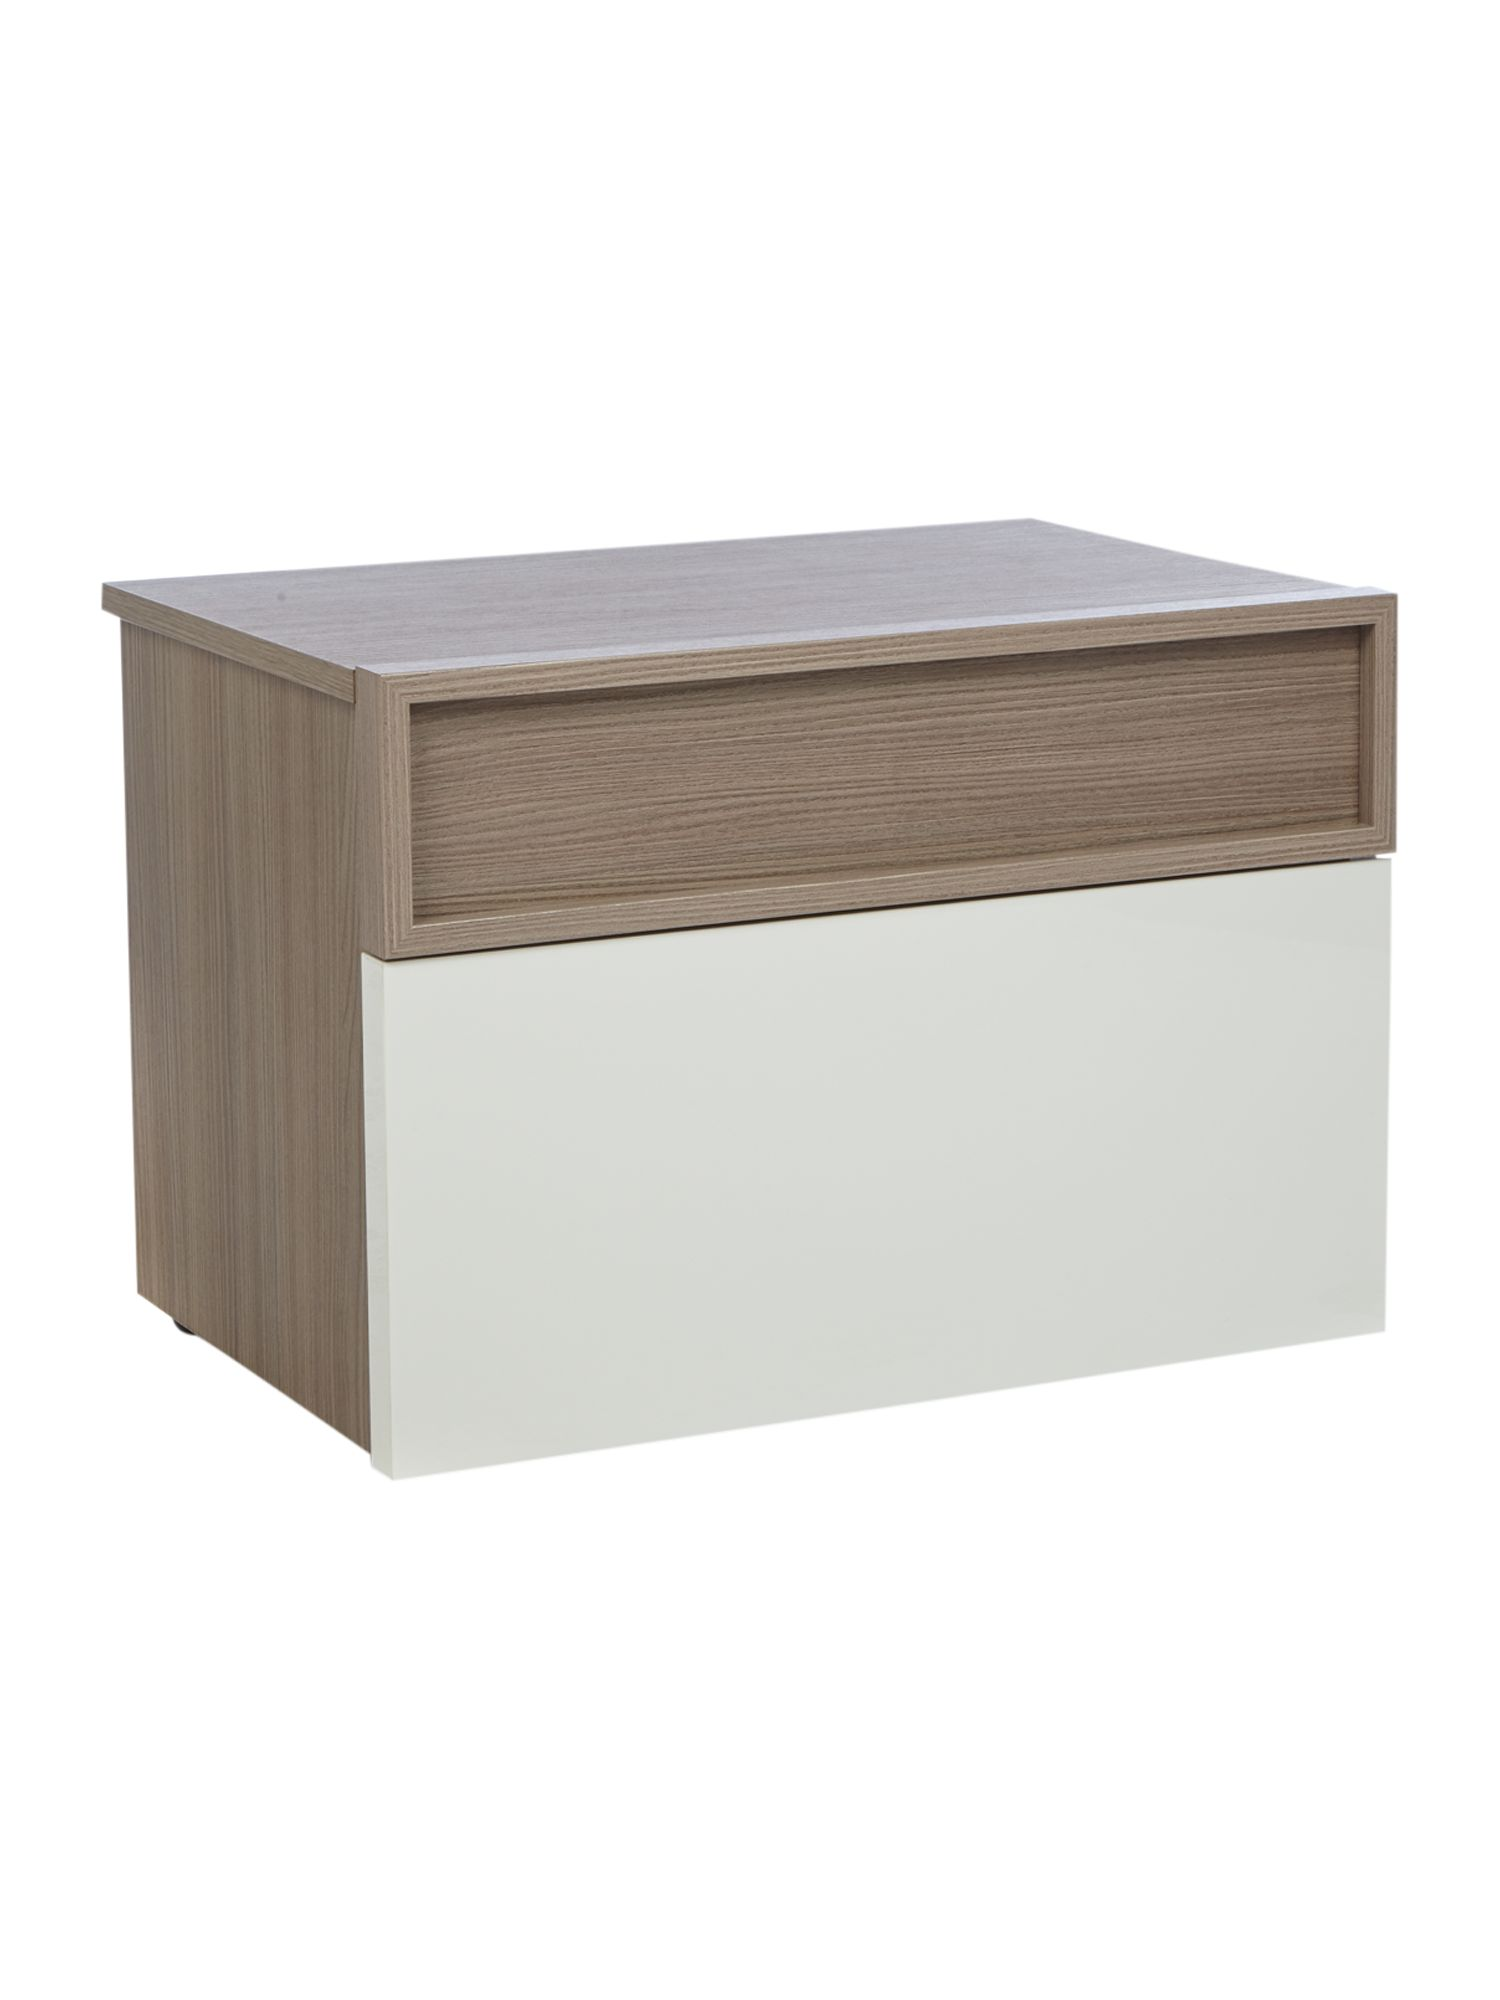 Empire 2 drawer bedside chest